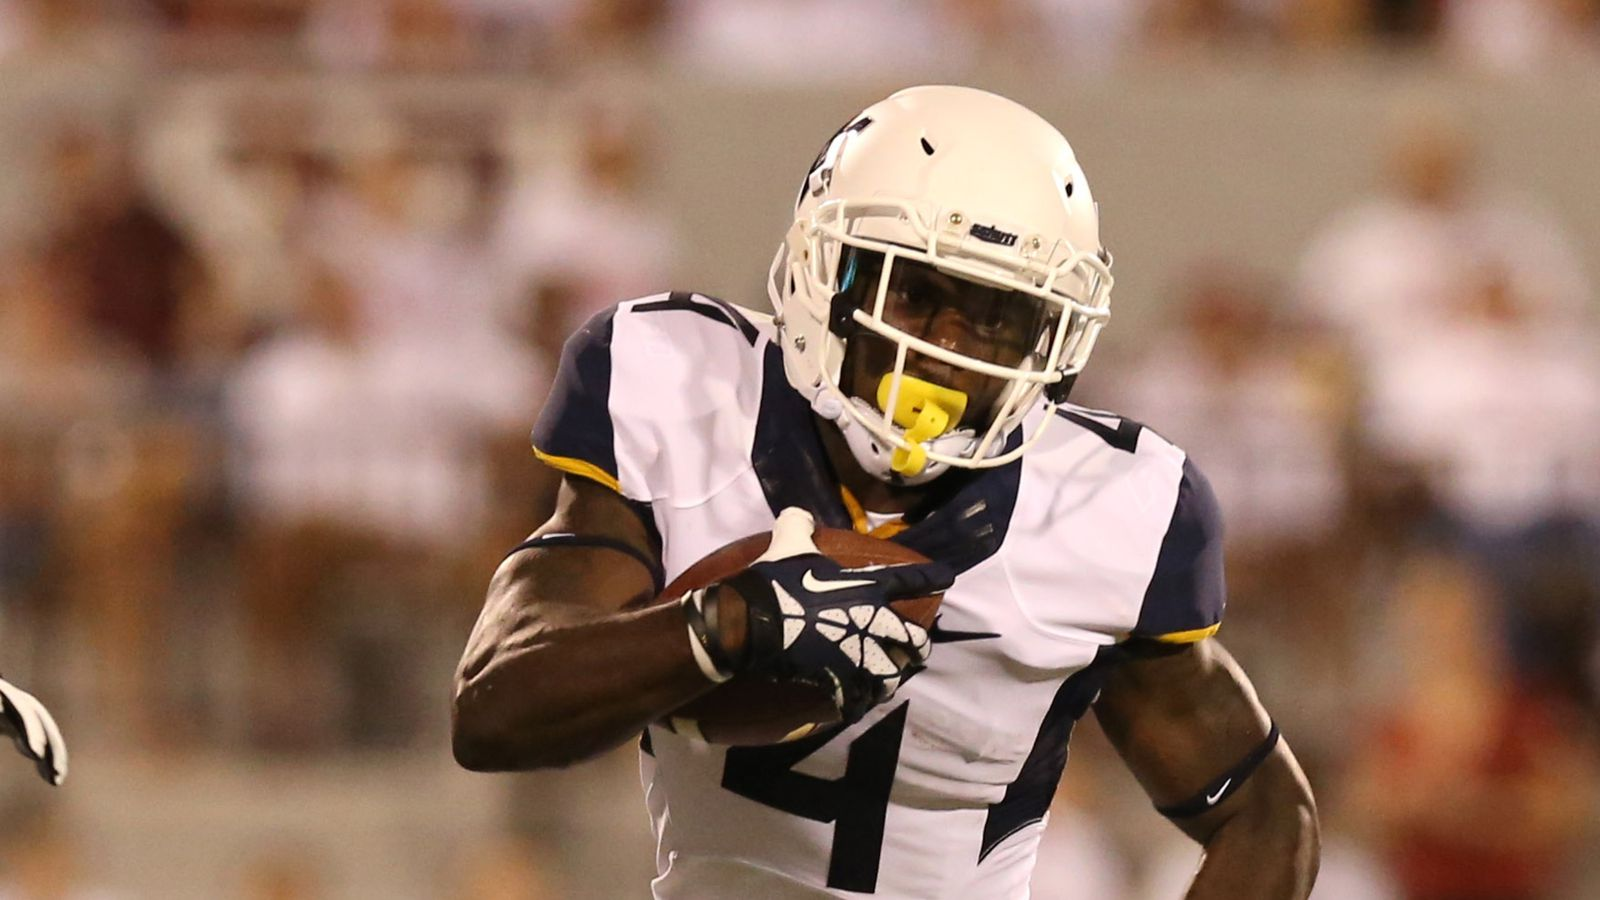 WVU Football Power Rankings, Spring Football - The Smoking ...